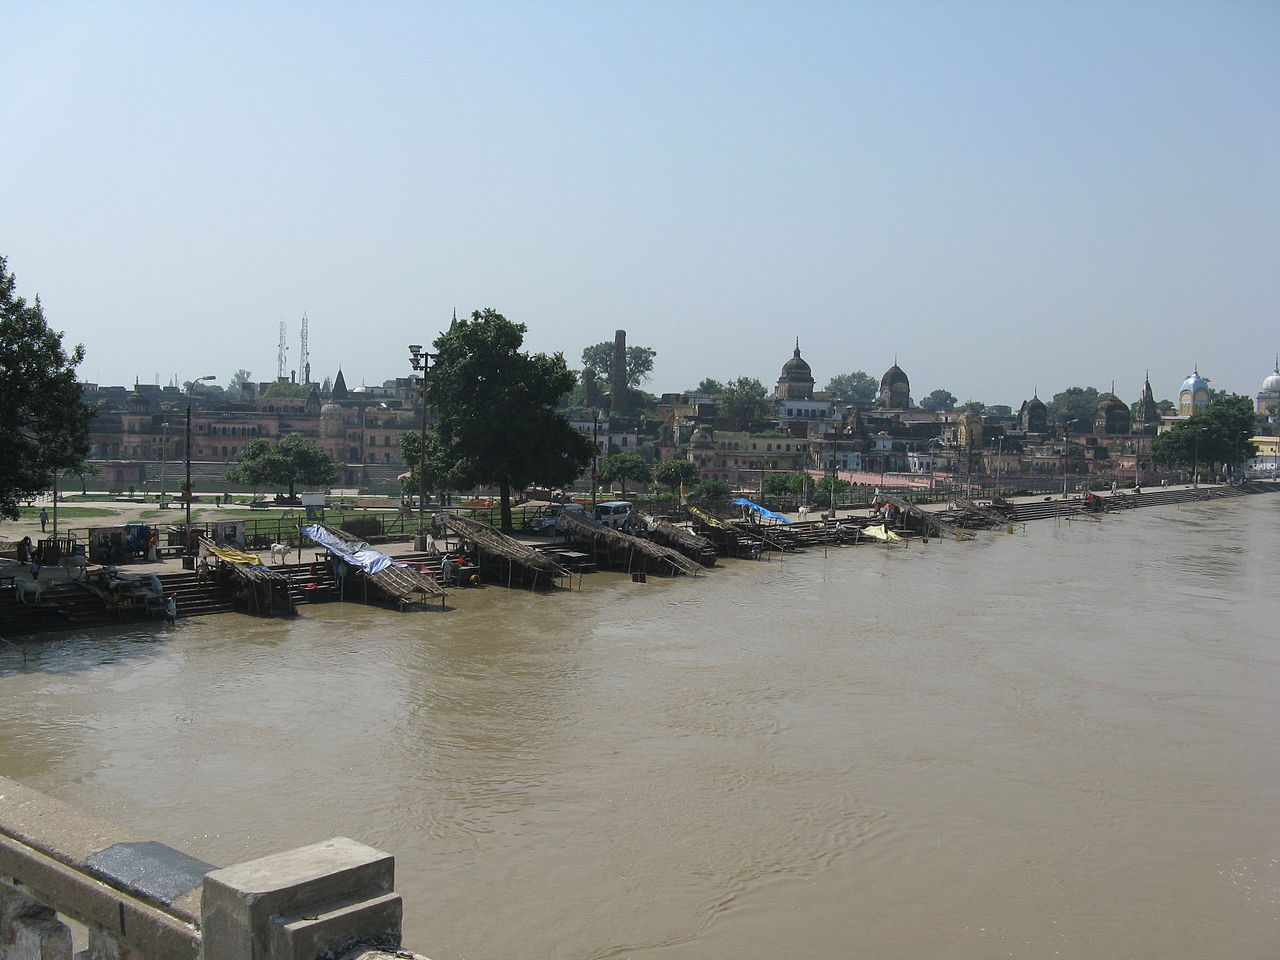 History of Saryu River & Major Attractions To Visit On The Banks of River Saryu